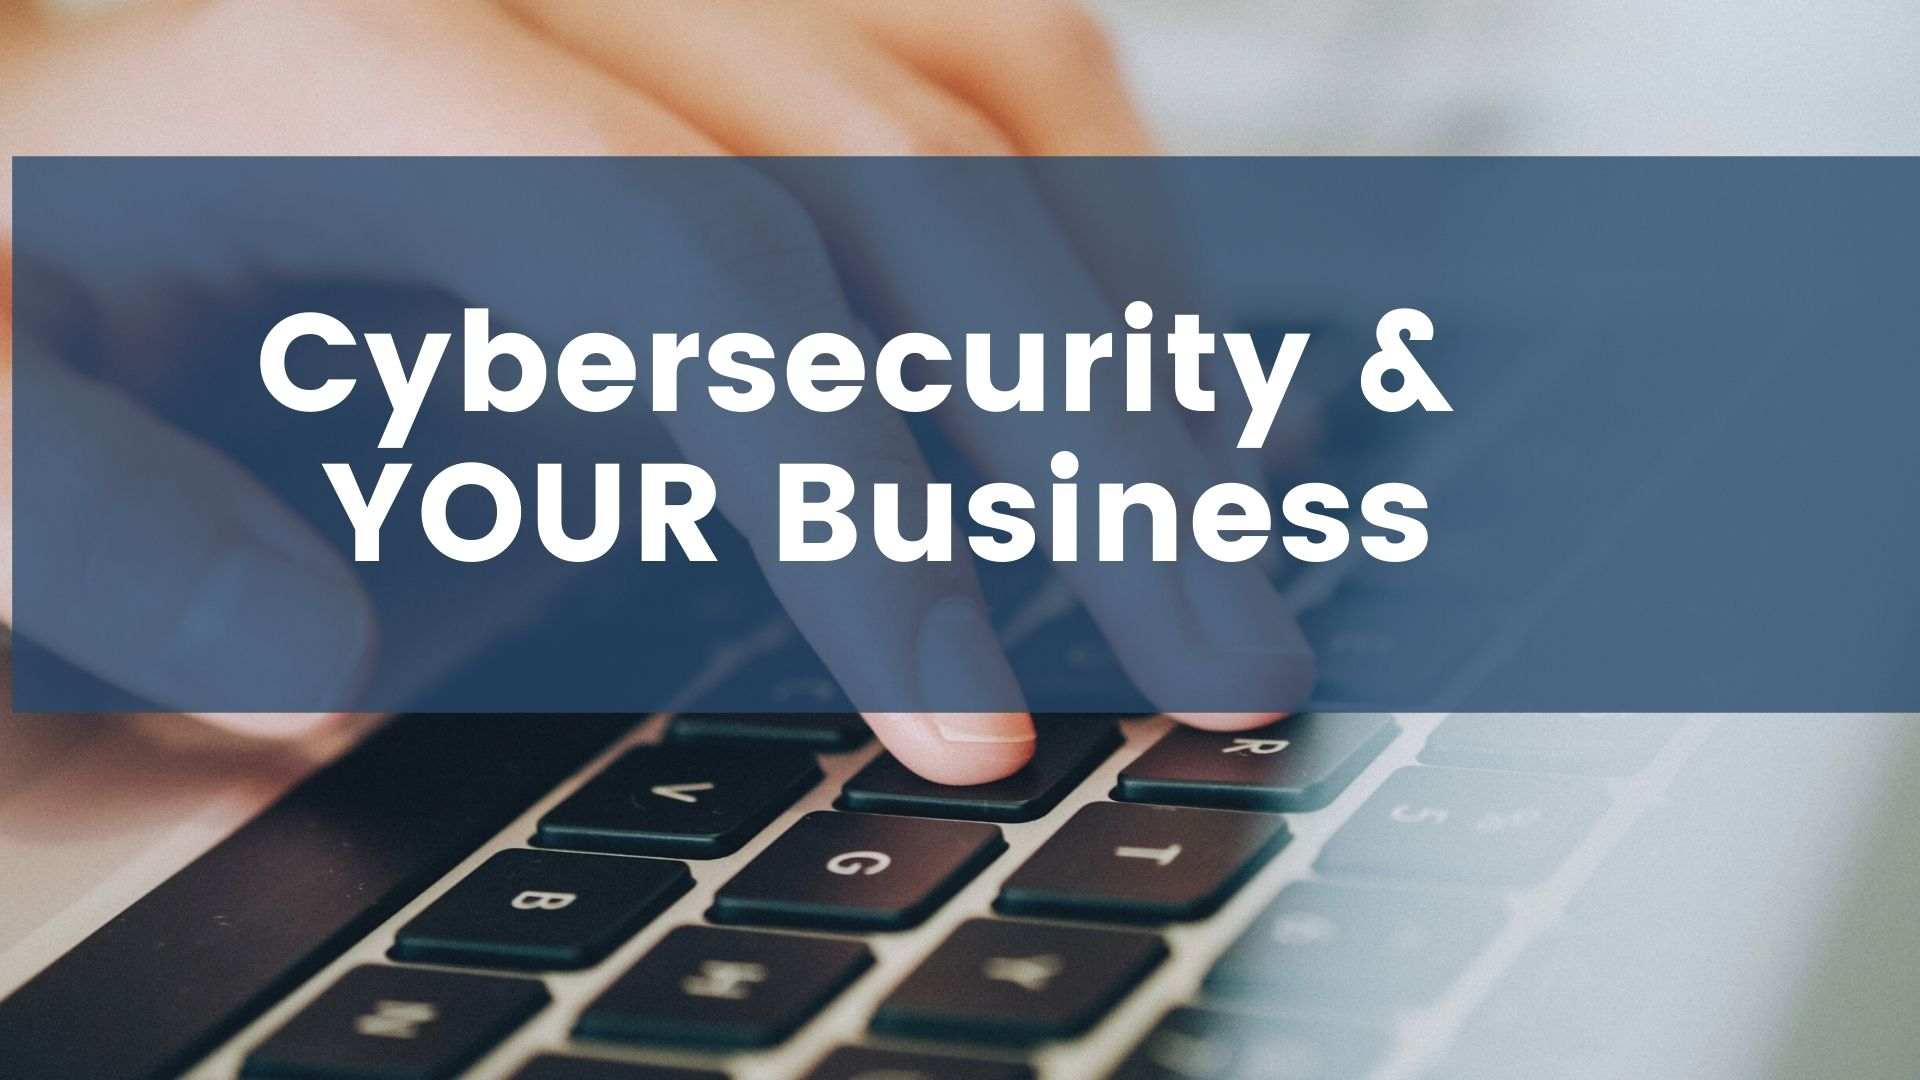 Cybersecurity and YOUR Business course image